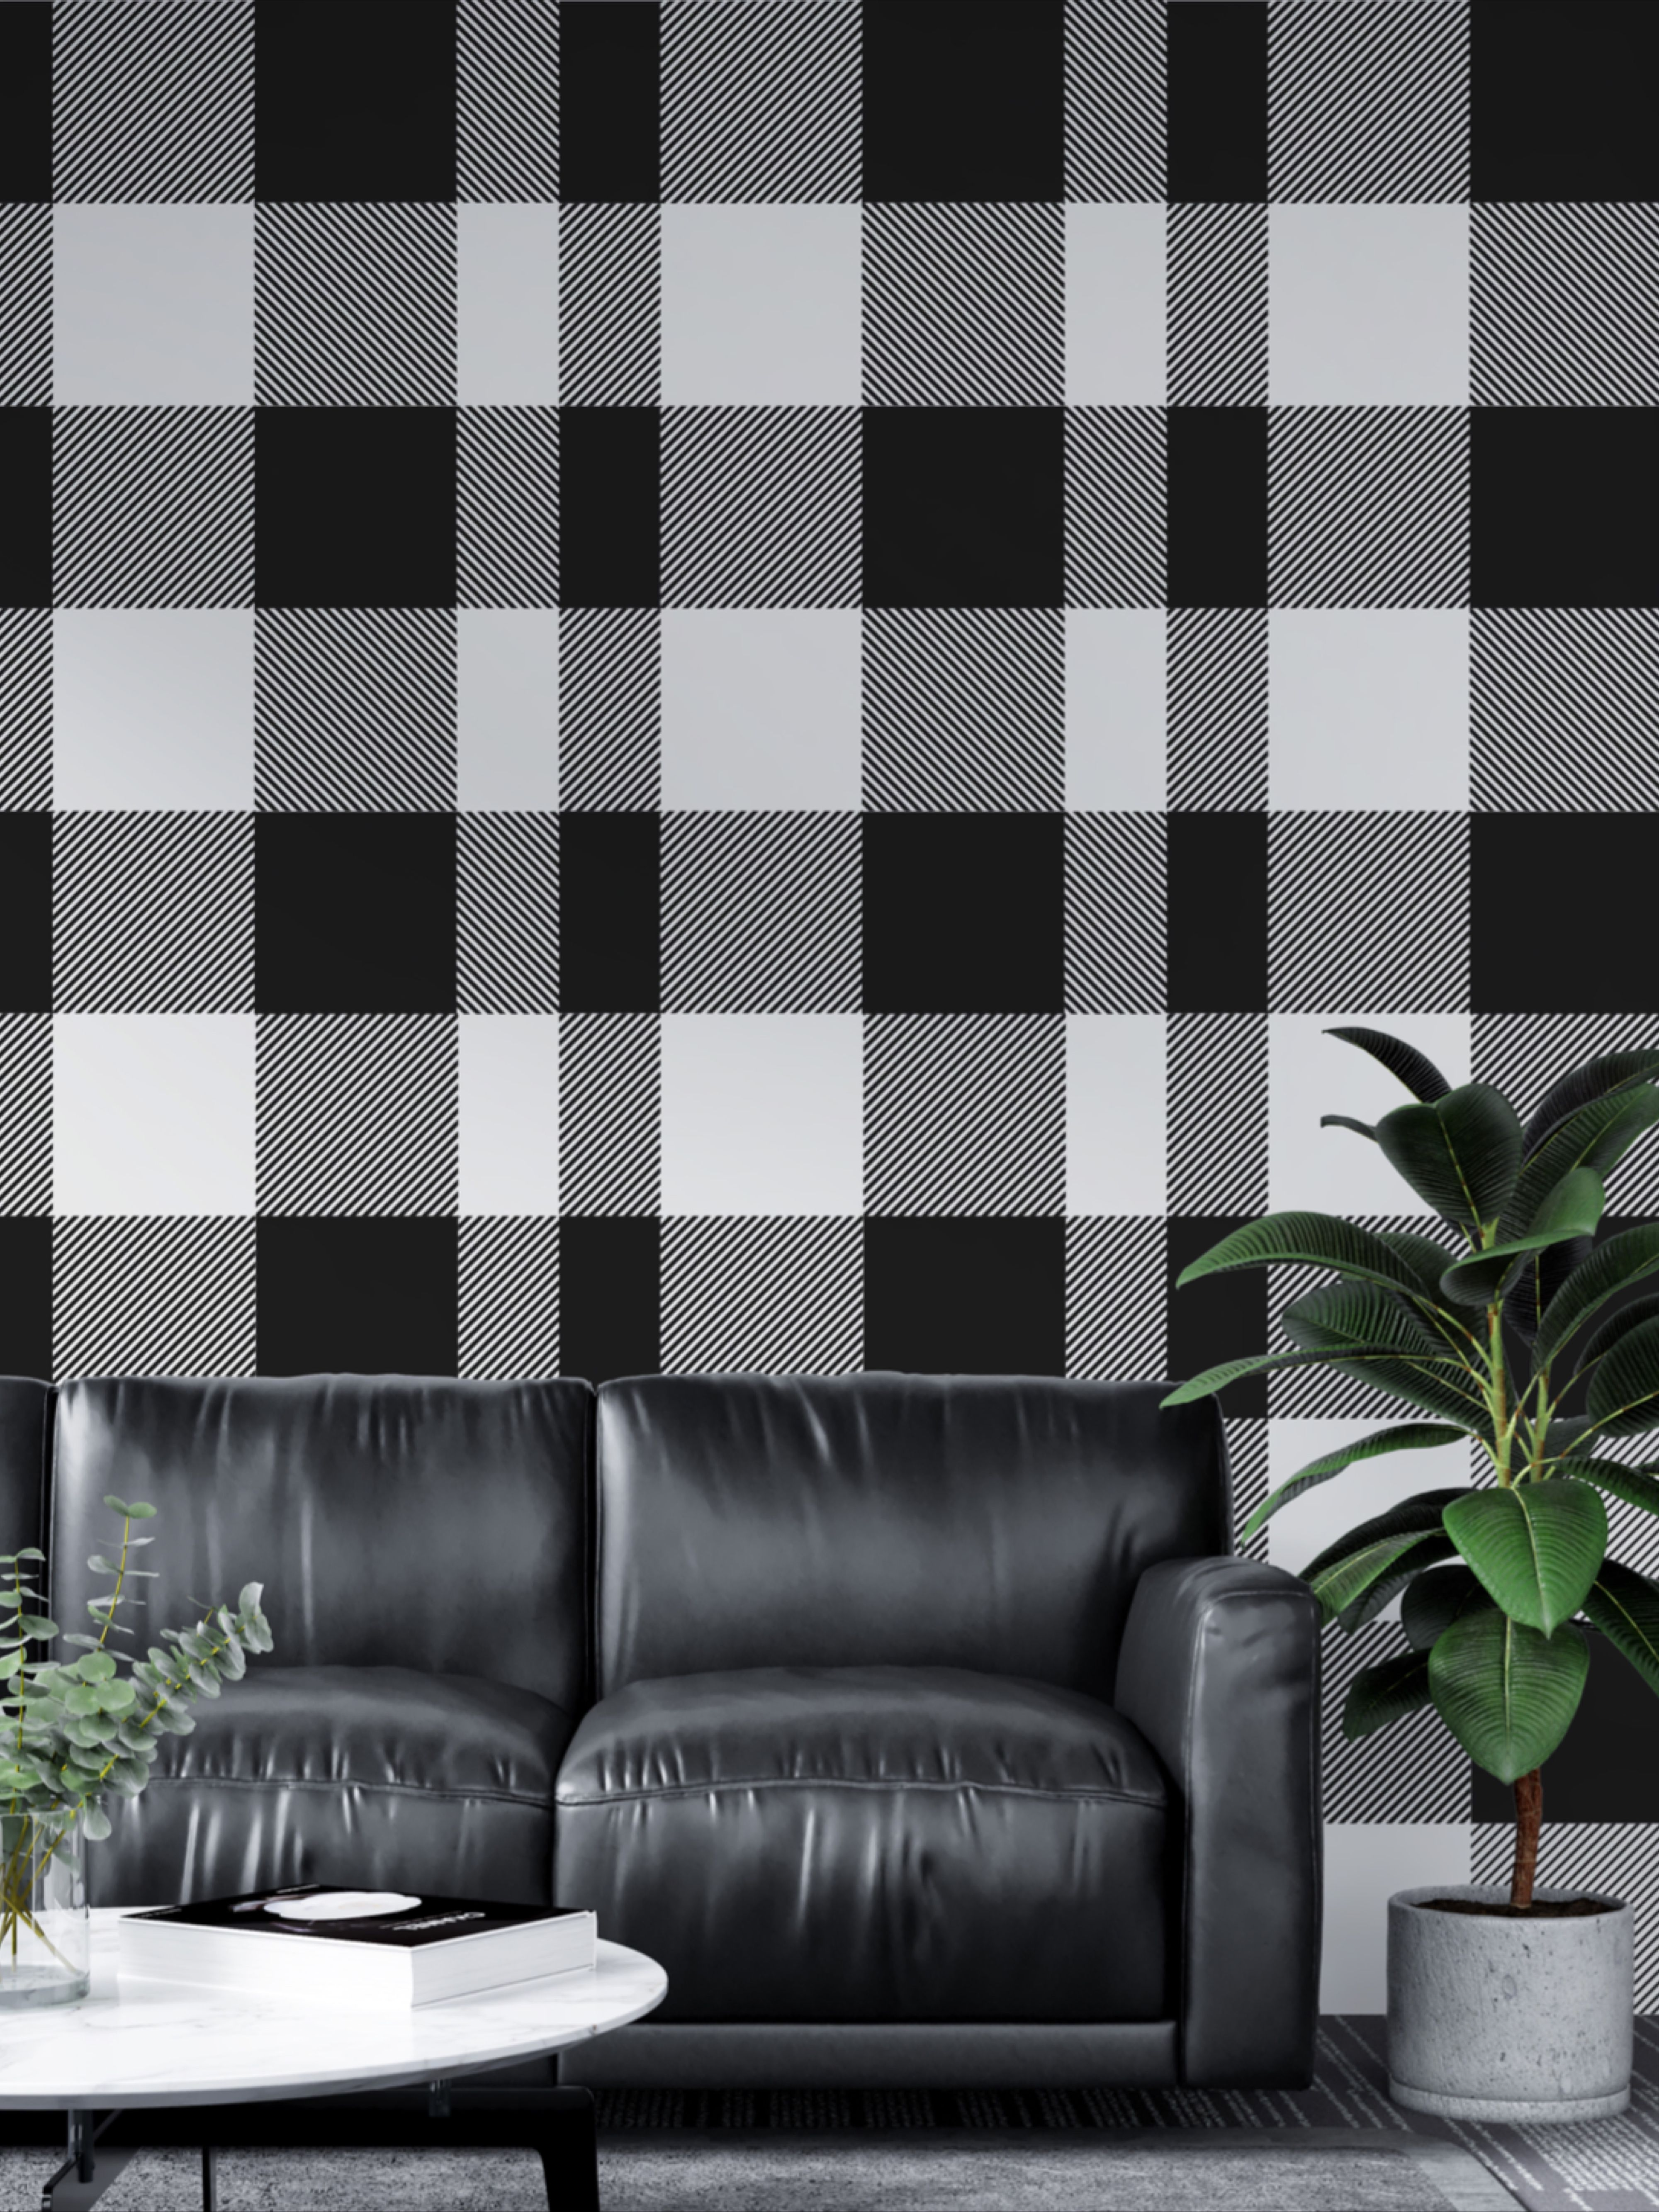 Buffalo Check Wallpaper Plaid Peel And Stick For Walls Black Etsy How To Install Wallpaper Buffalo Plaid Pattern Plaid Wallpaper